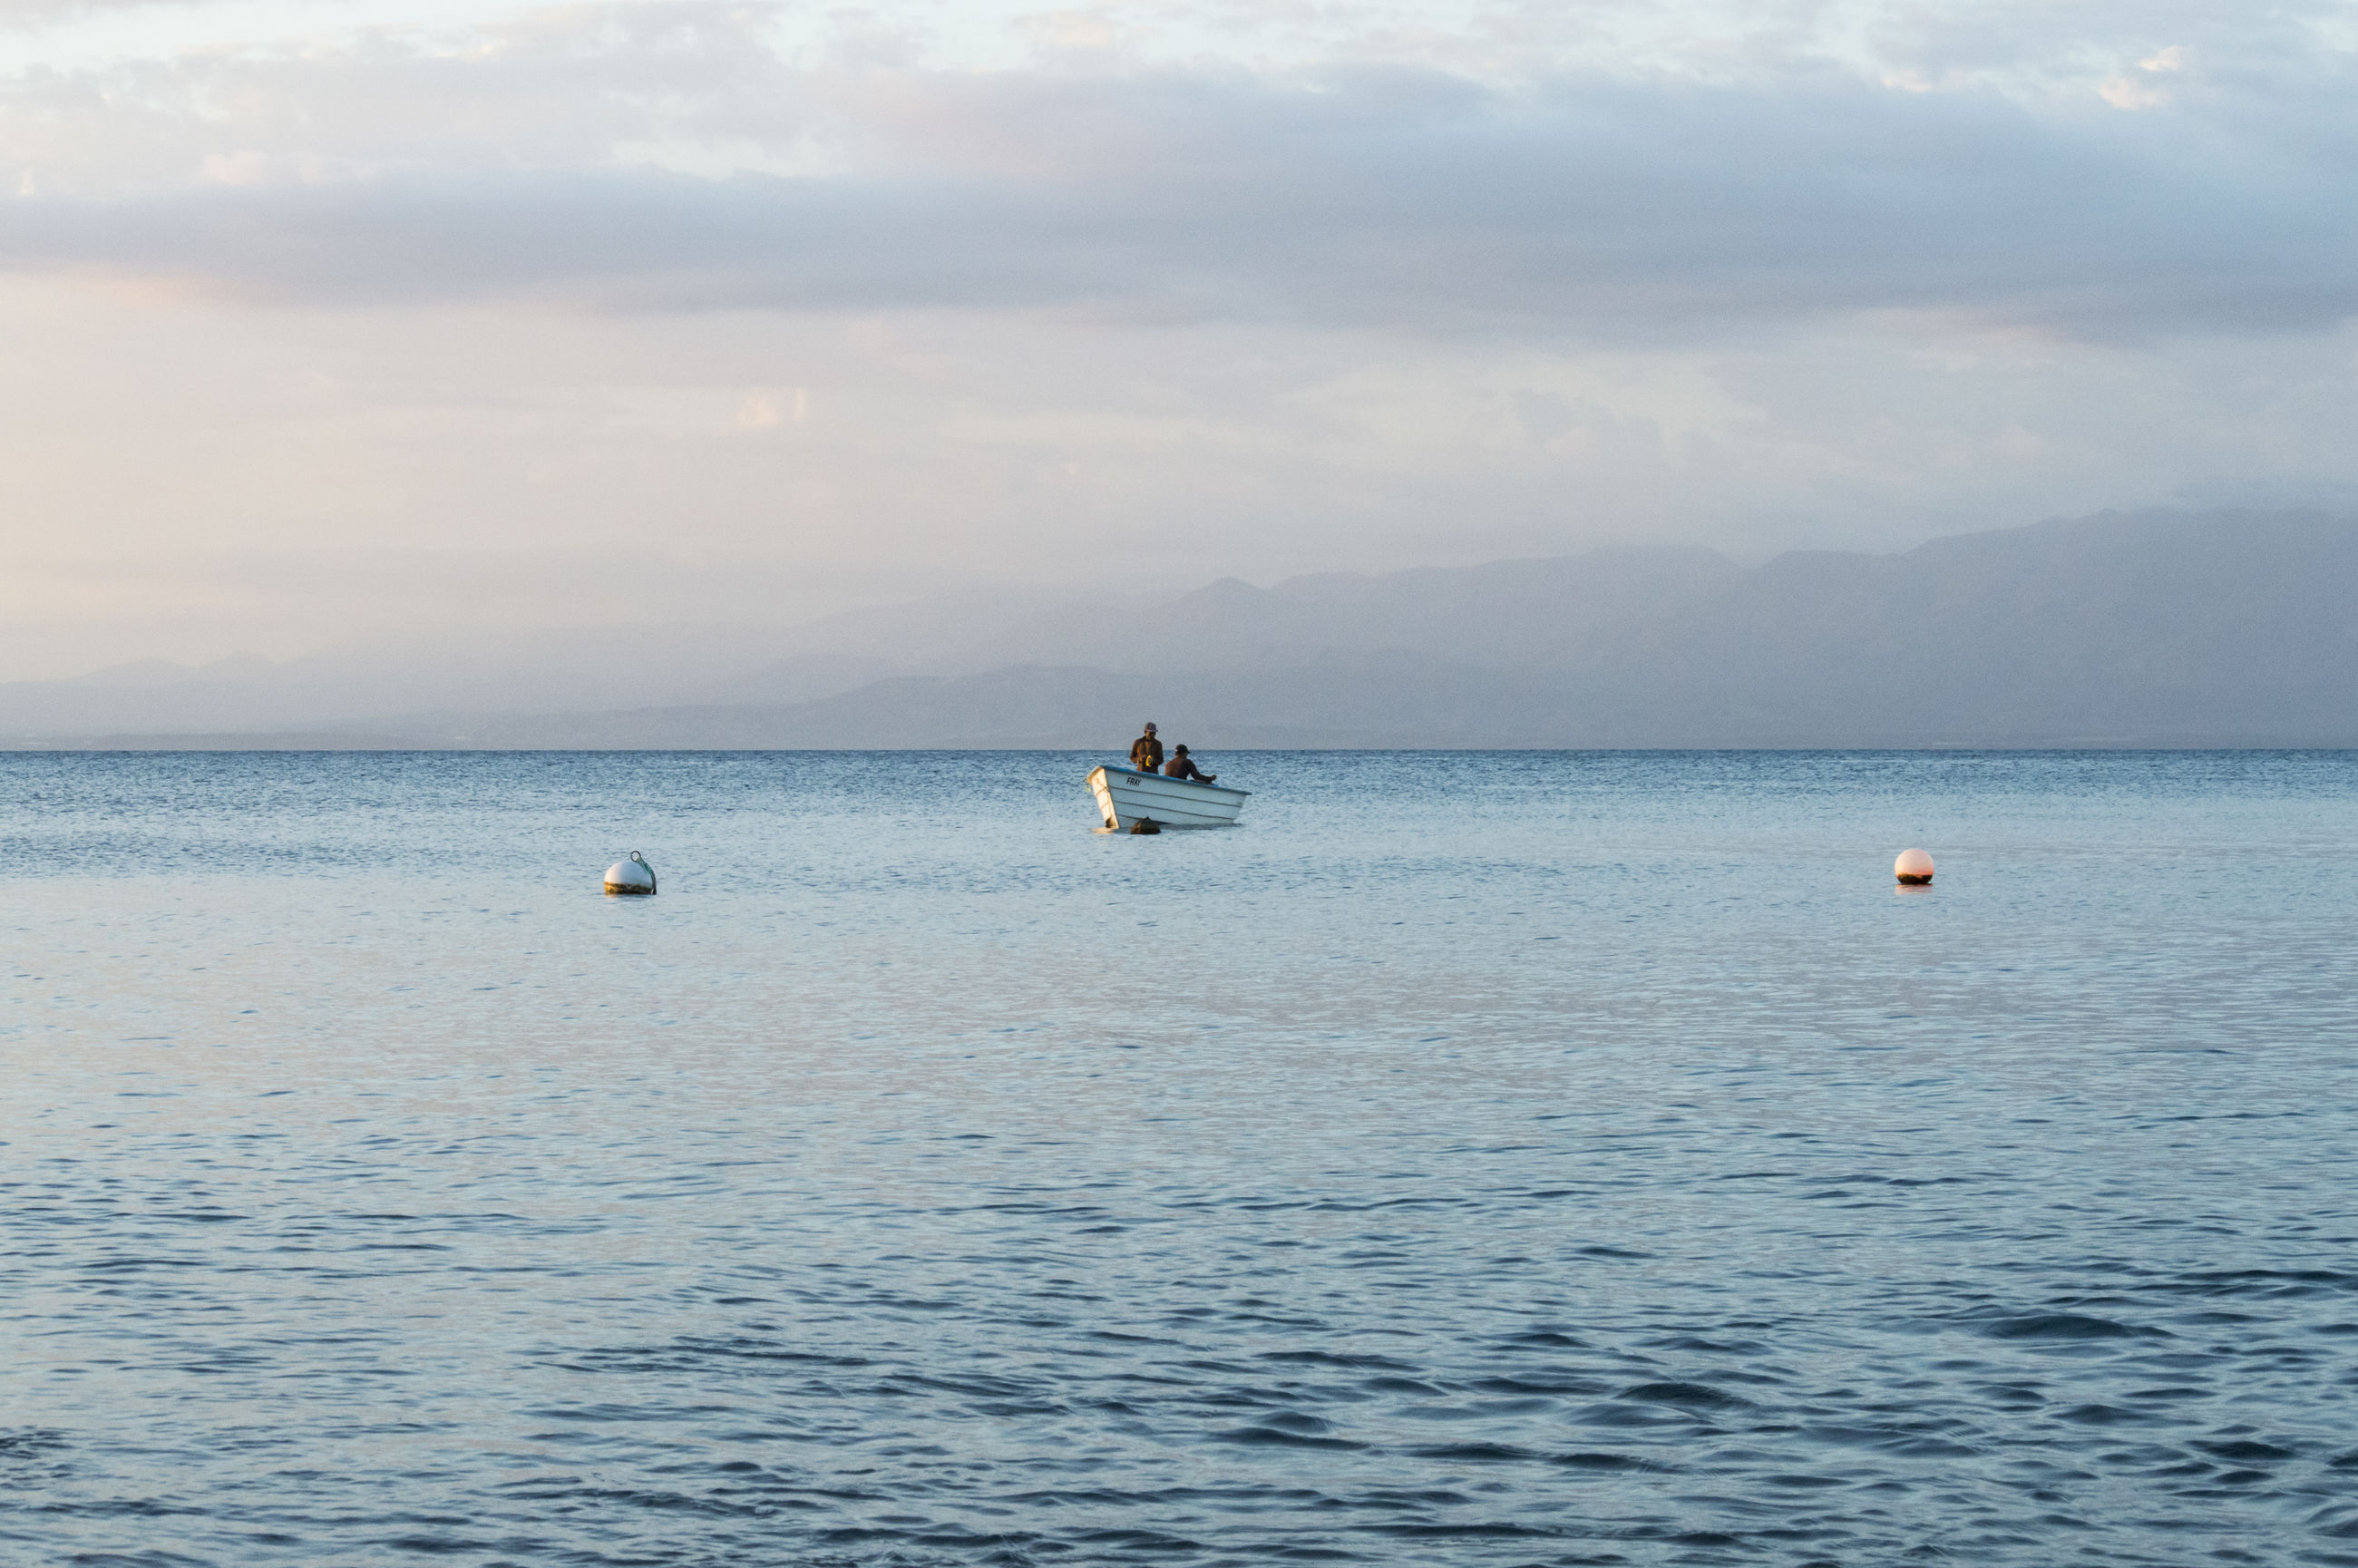 water, sea, nature, beauty in nature, cloud - sky, sky, scenics, waterfront, nautical vessel, tranquility, transportation, outdoors, day, horizon over water, mode of transport, no people, jet boat